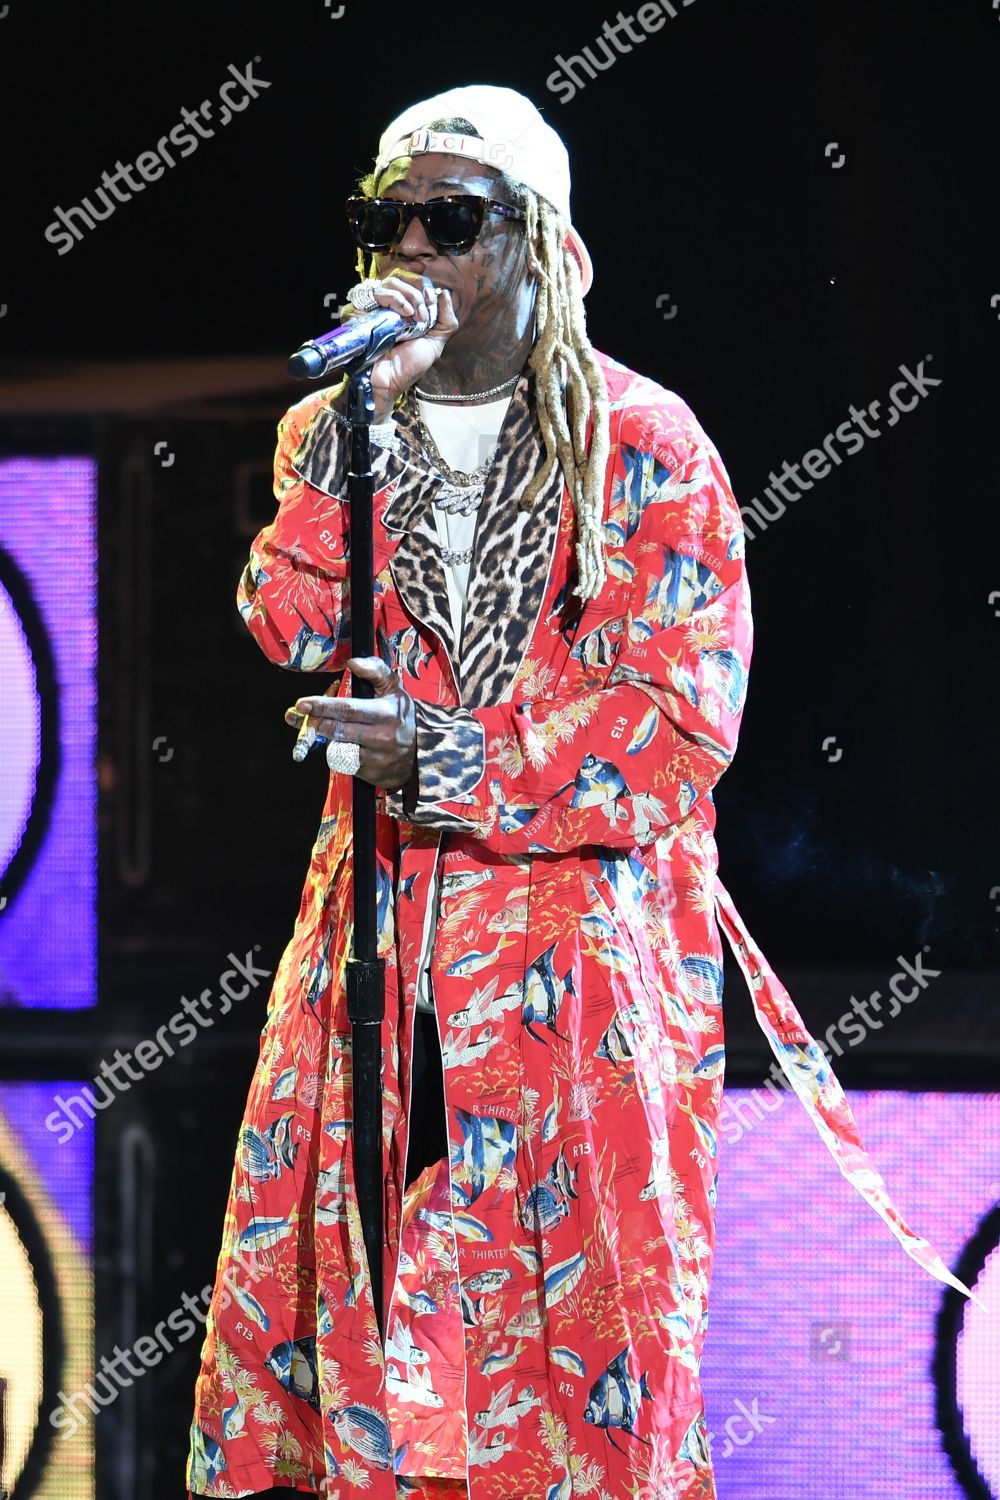 Lil Wayne Editorial Stock Photo - Stock Image | Shutterstock